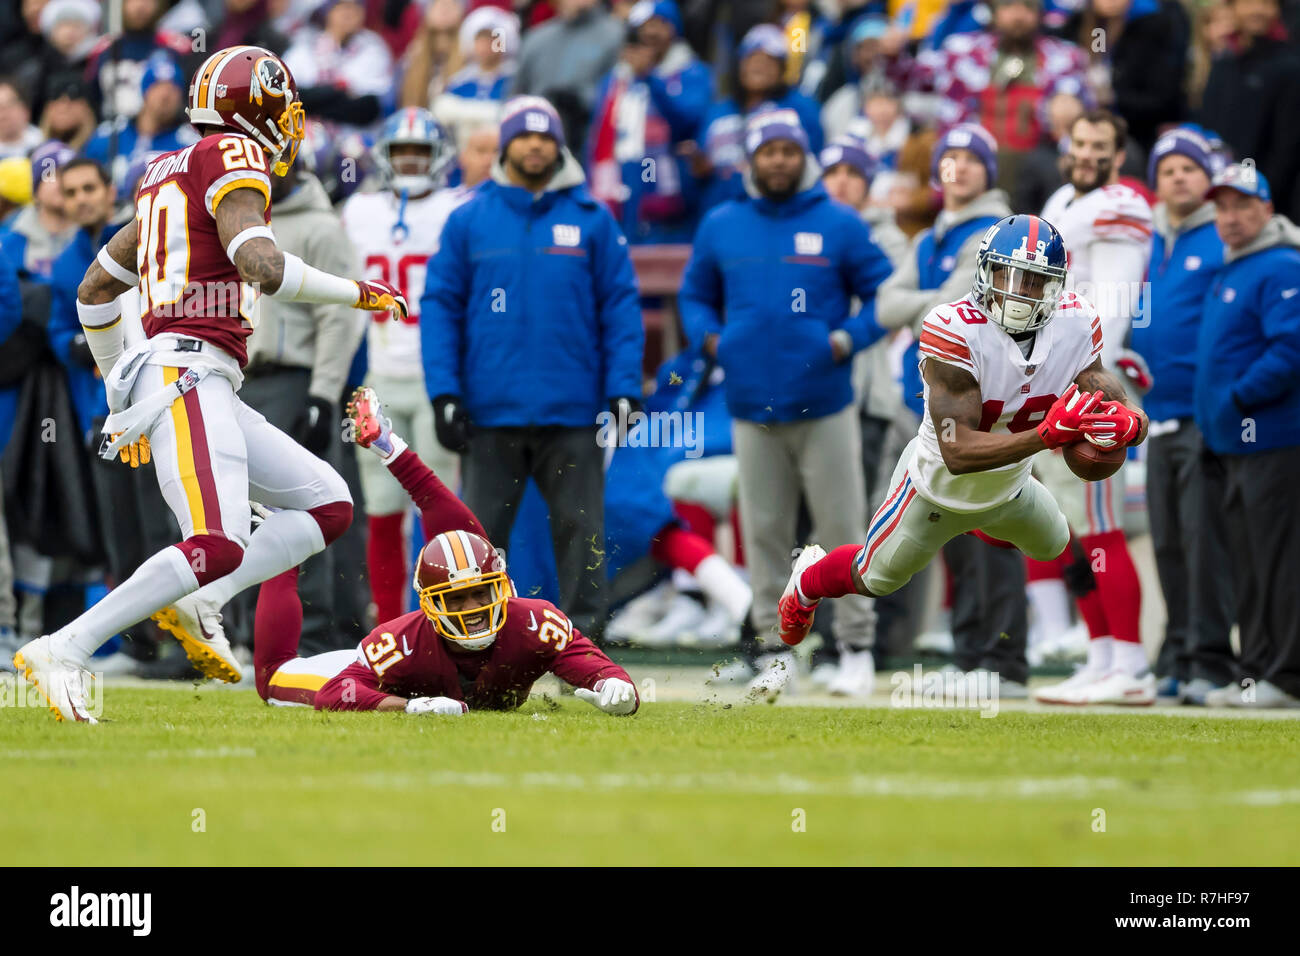 Landover, Maryland, USA. 09th Dec, 2018. New York Giants wide receiver Corey Coleman (19) attempts to catch a pass in front of Washington Redskins cornerback Fabian Moreau (31) and strong safety Ha Ha Clinton-Dix (20) during the first half of the NFL game between the New York Giants and the Washington Redskins at FedExField in Landover, Maryland. Scott Taetsch/CSM/Alamy Live News Stock Photo